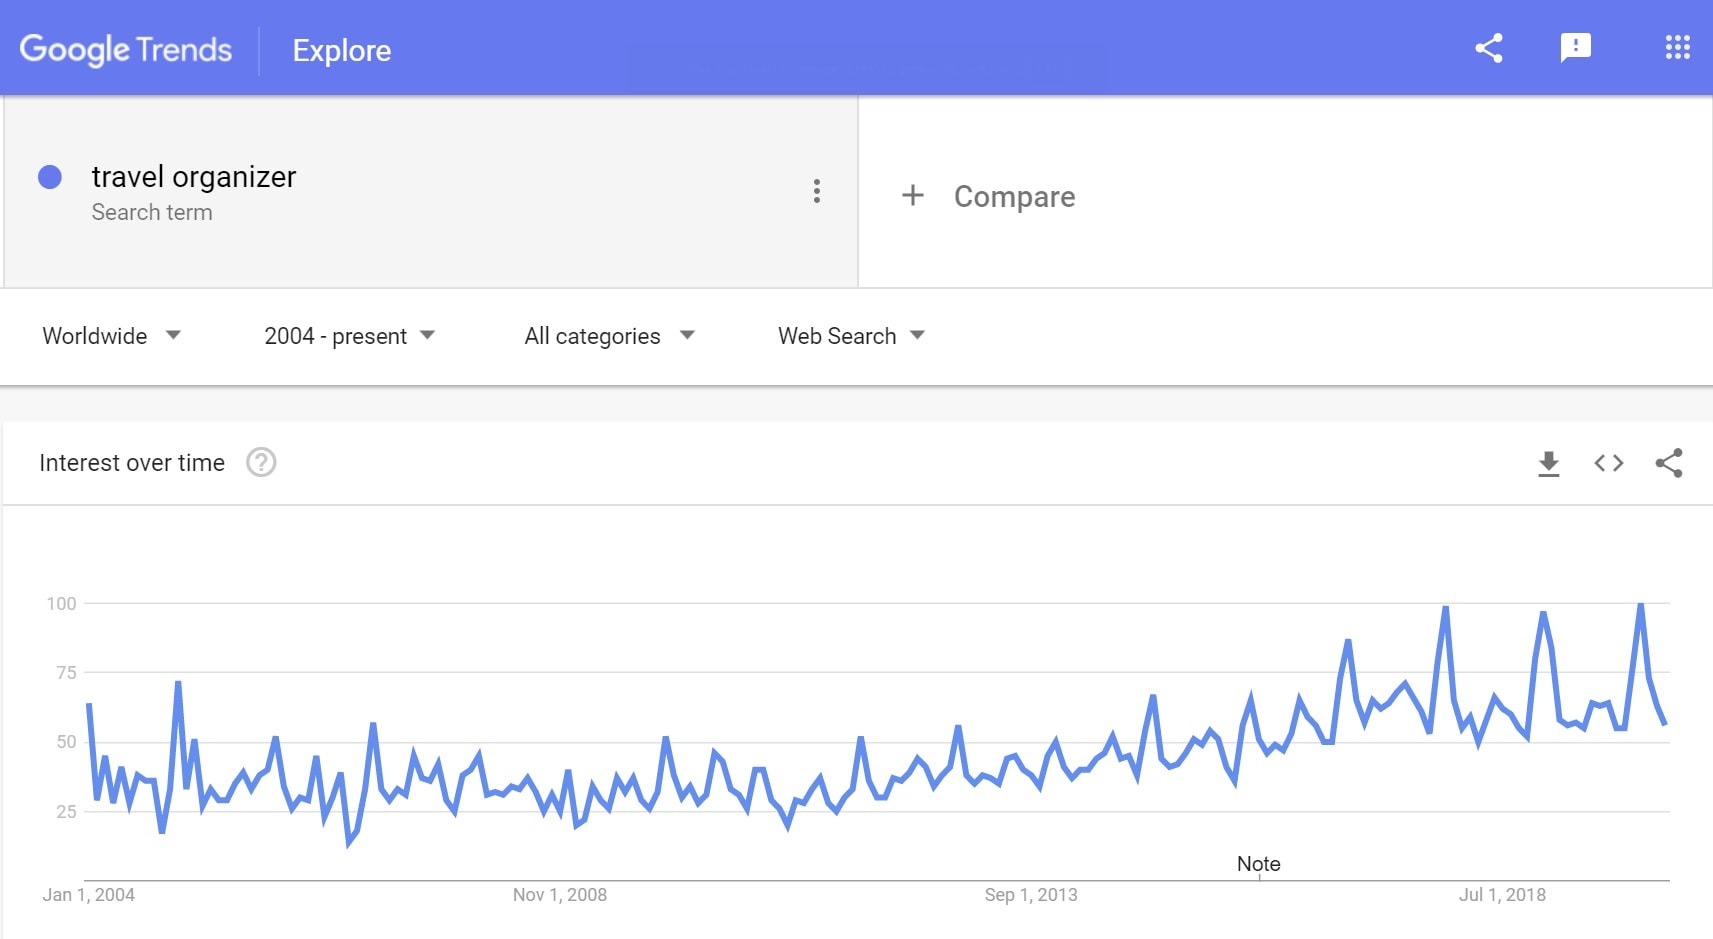 Google trends: Travel organizer to sell